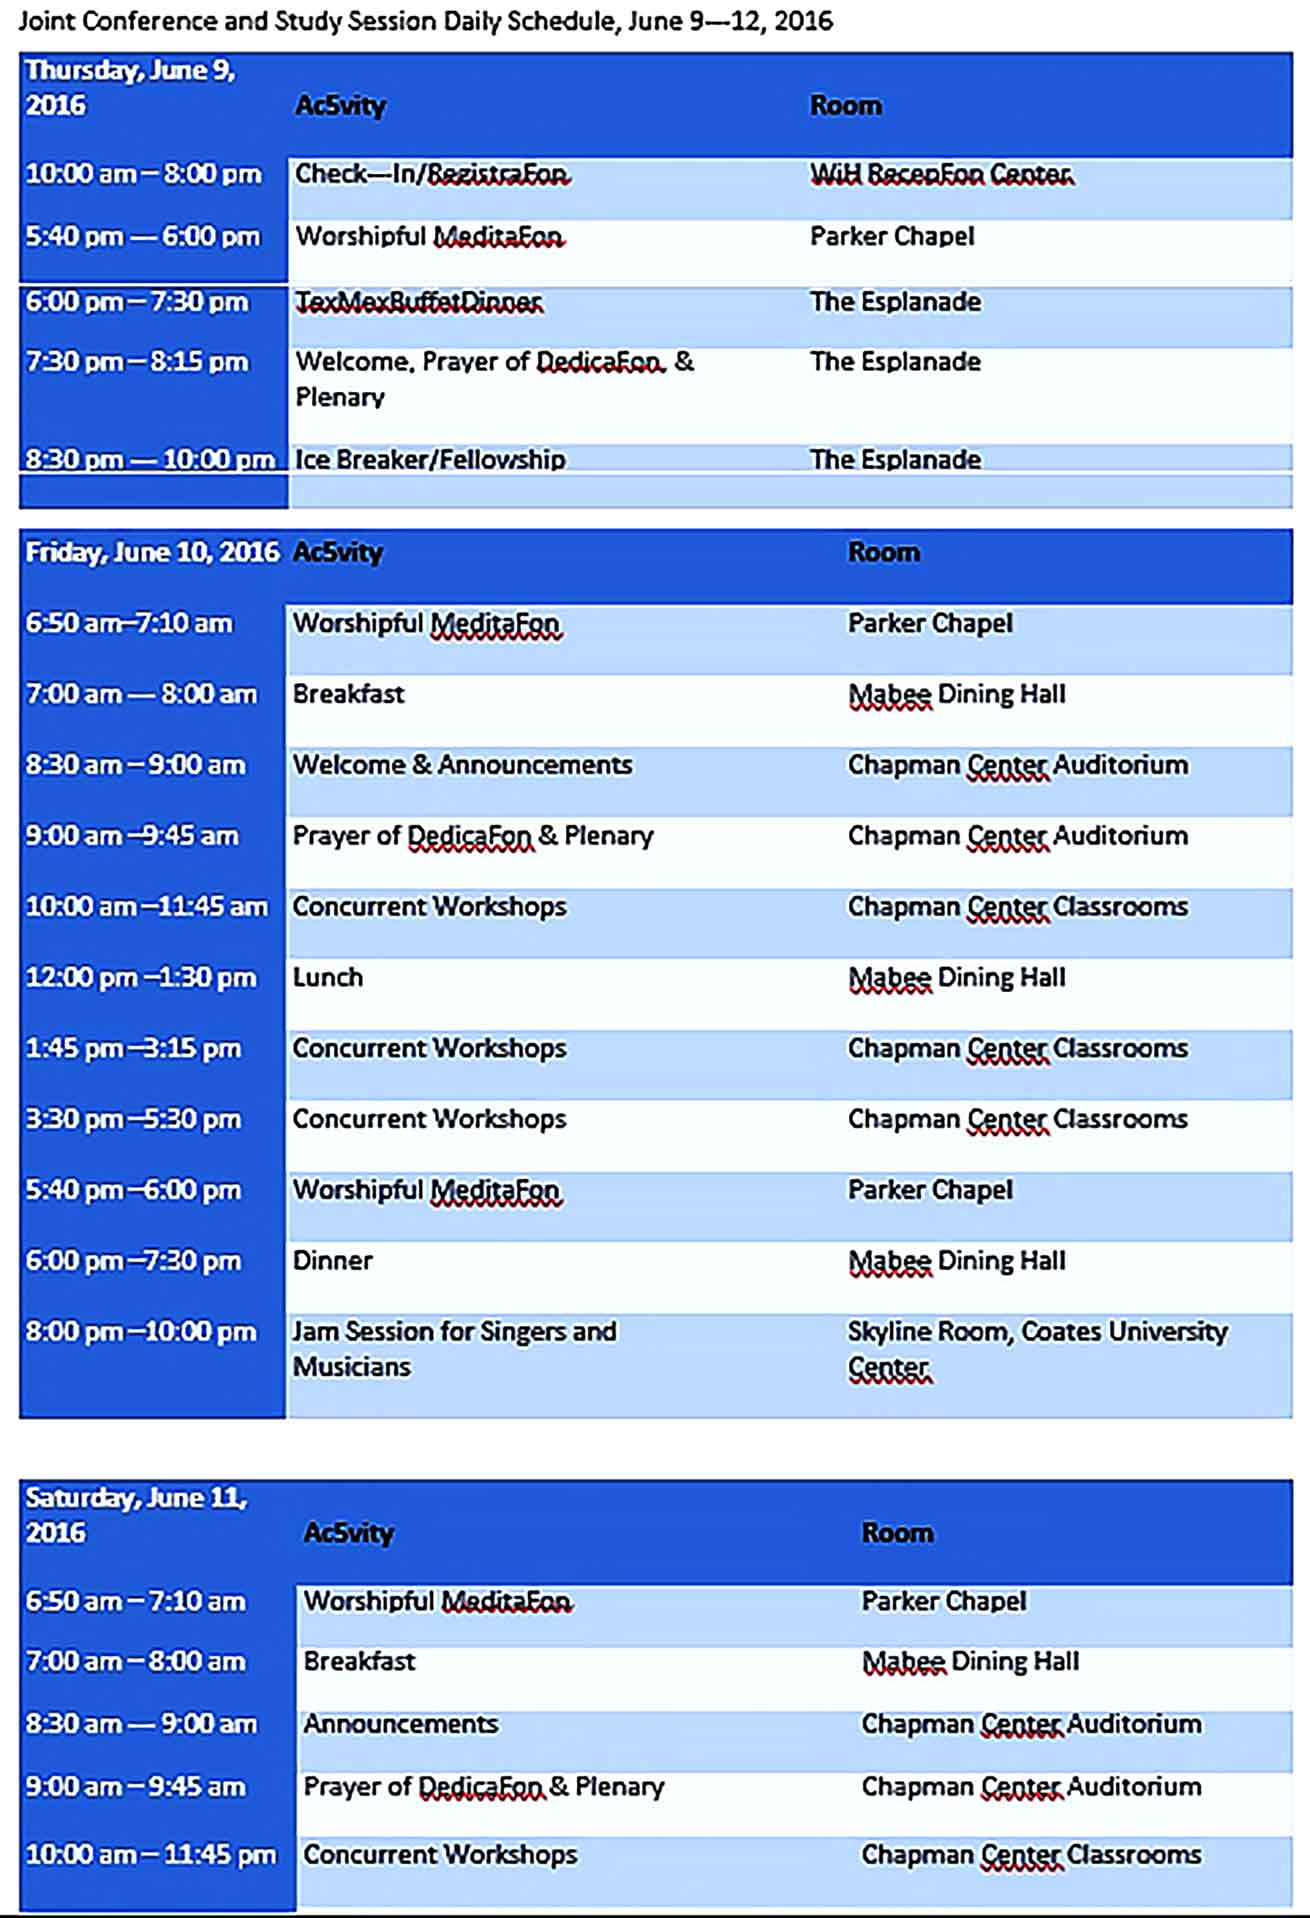 Template Conference Room Daily Schedule Sample Copy